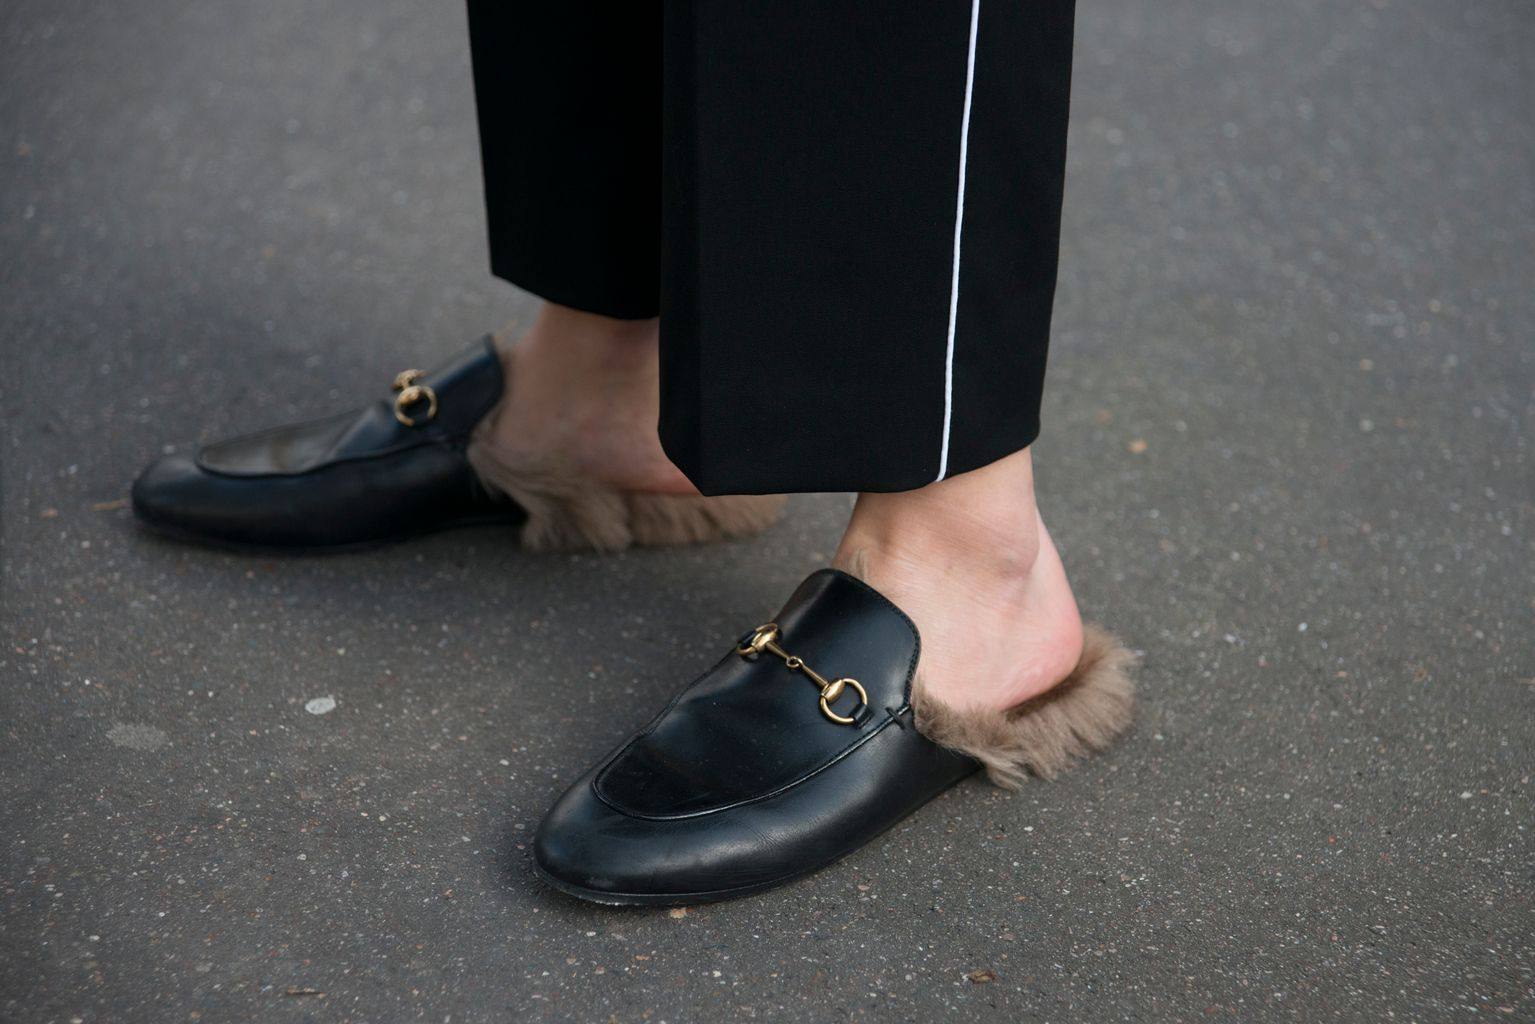 dddfef388 These Loafers Are Guaranteed To See You Through To Winter | Grazia